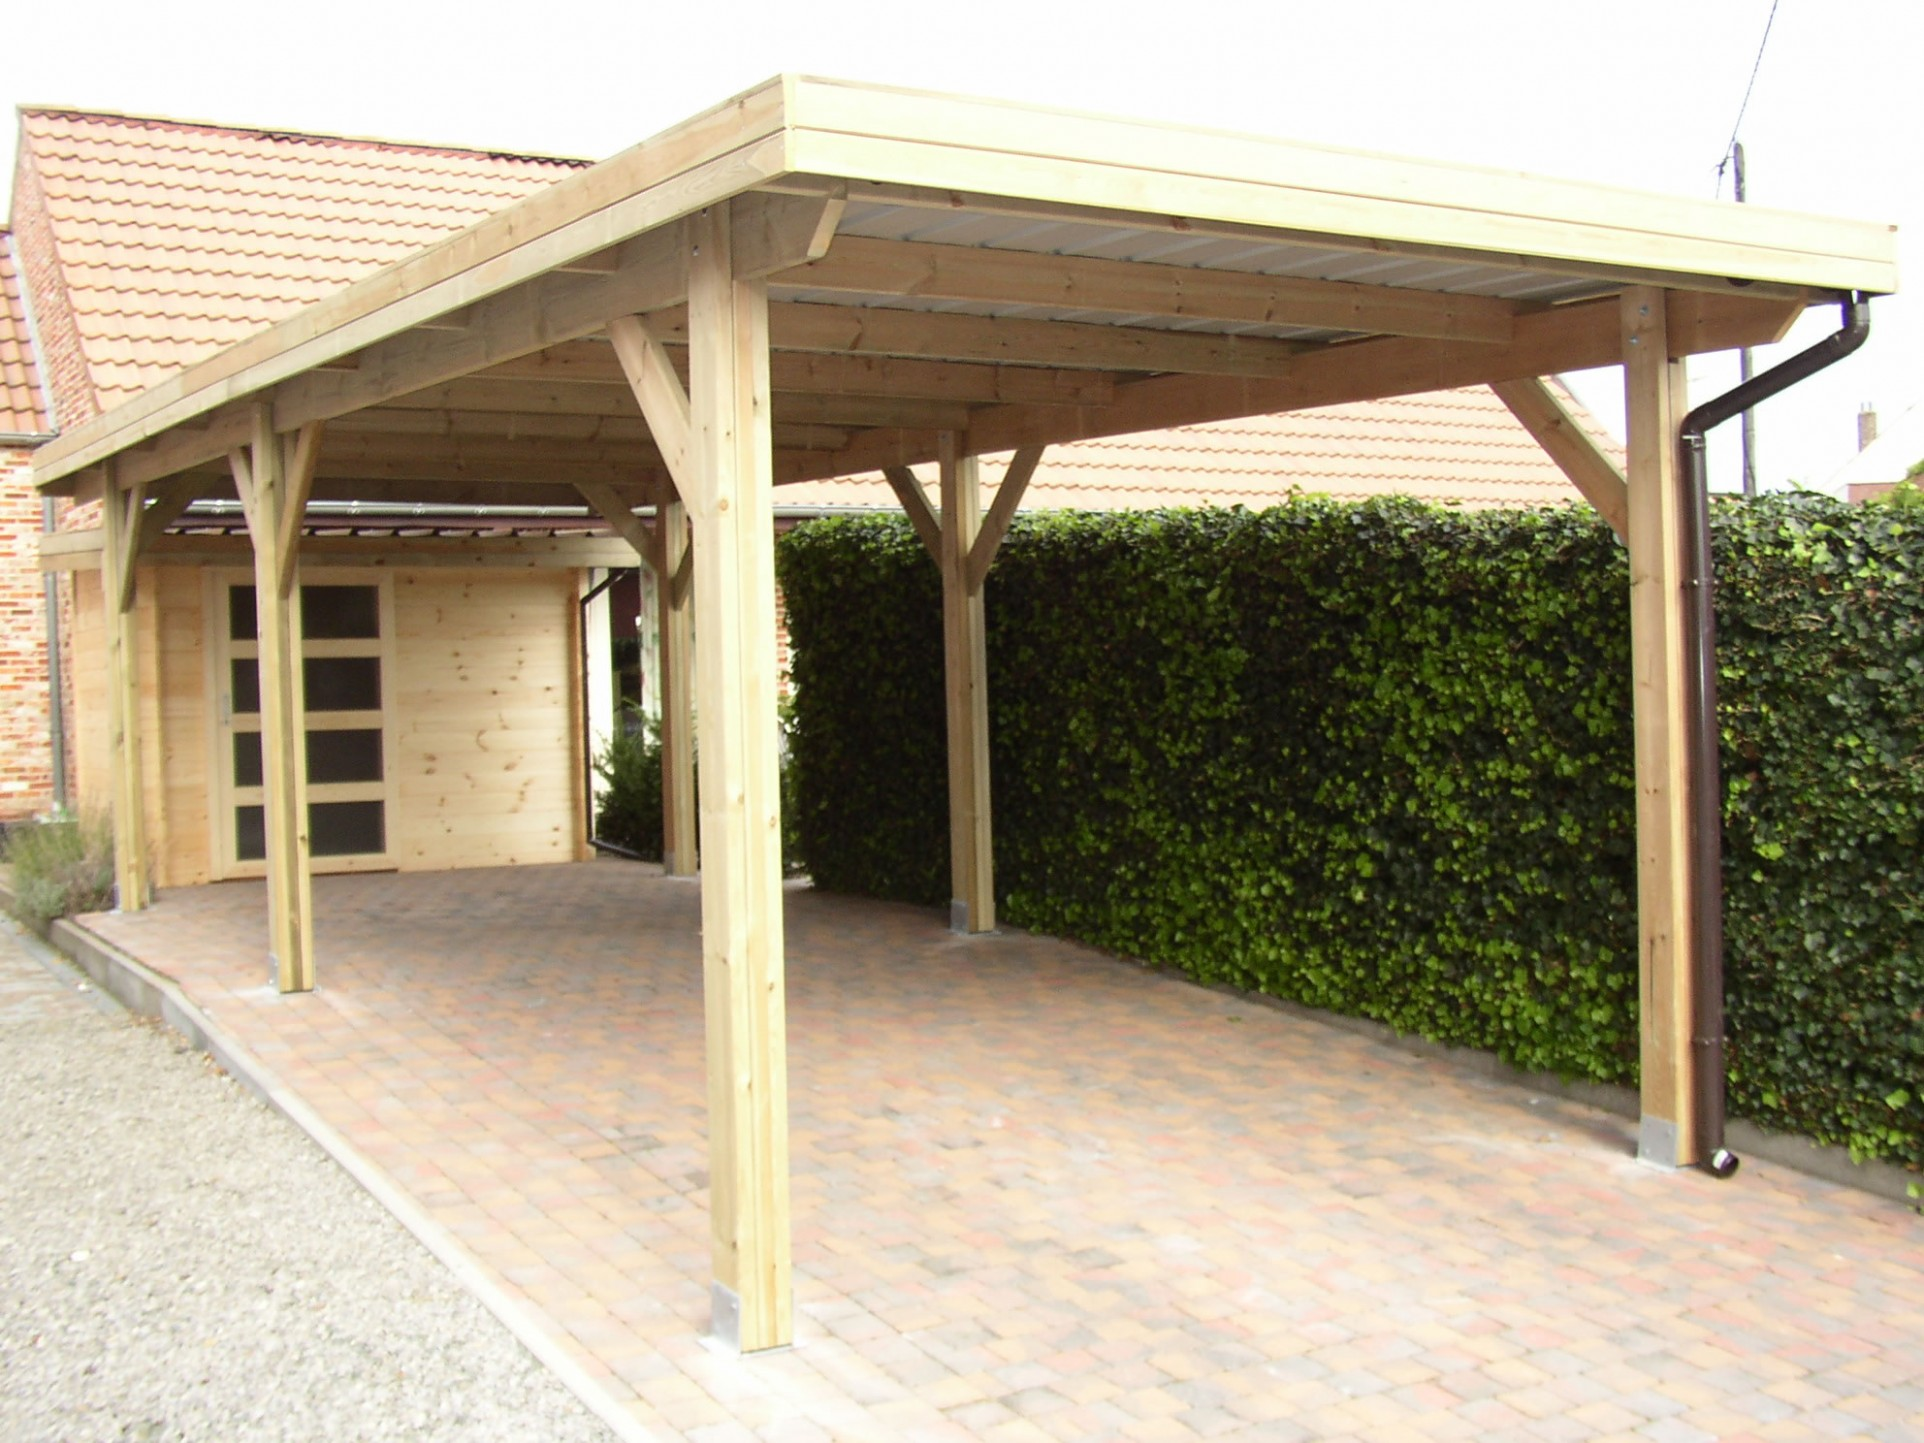 1517654207-sunccarportoutdoor-outside-carport.jpg